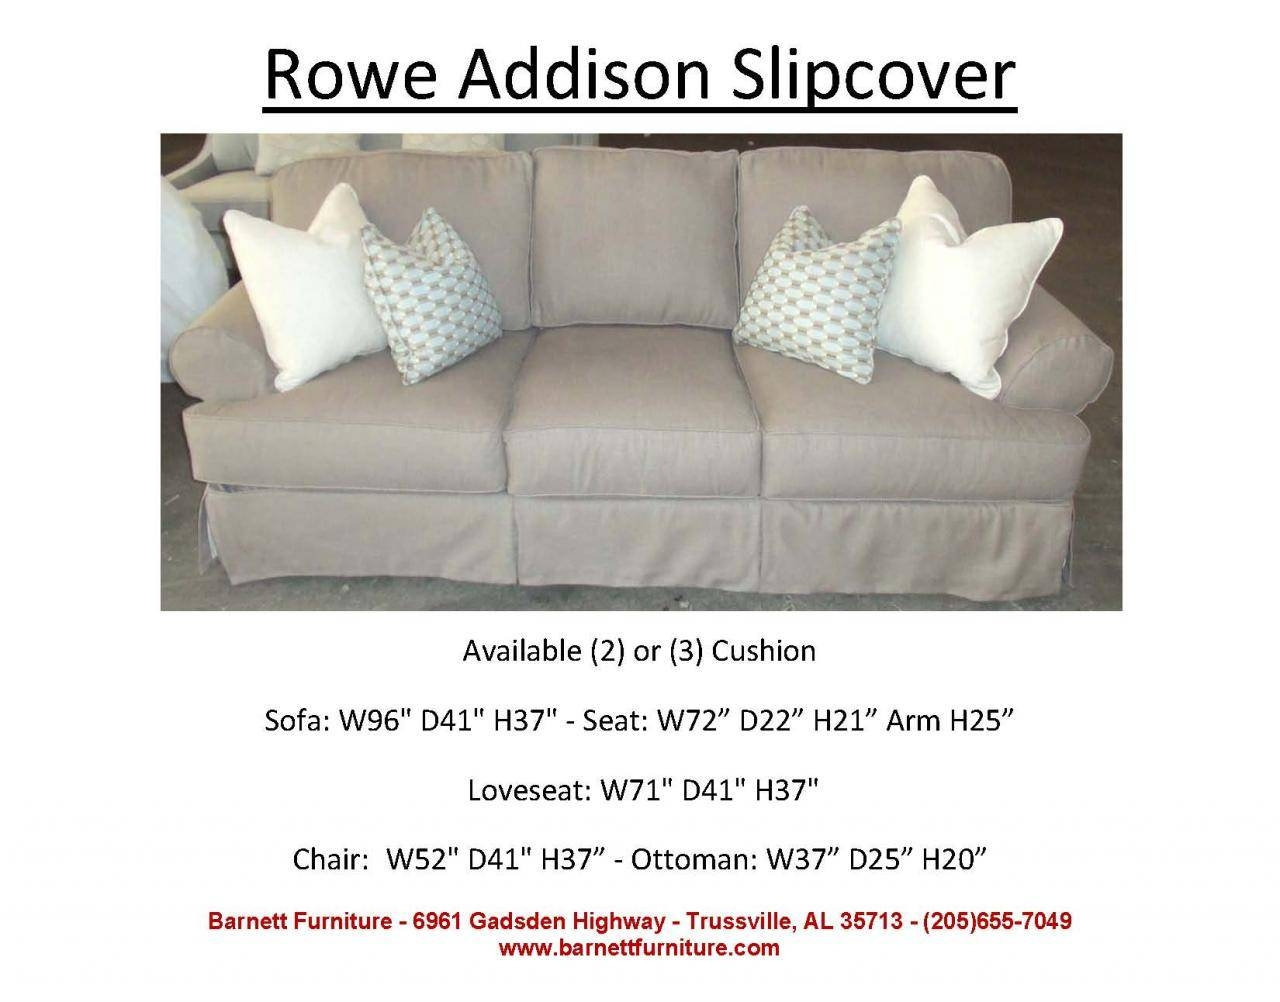 Barnett Furniture - Slipcover Sofas Sectionals, Chair And Ottoman with regard to Rowe Slipcovers (Image 1 of 15)